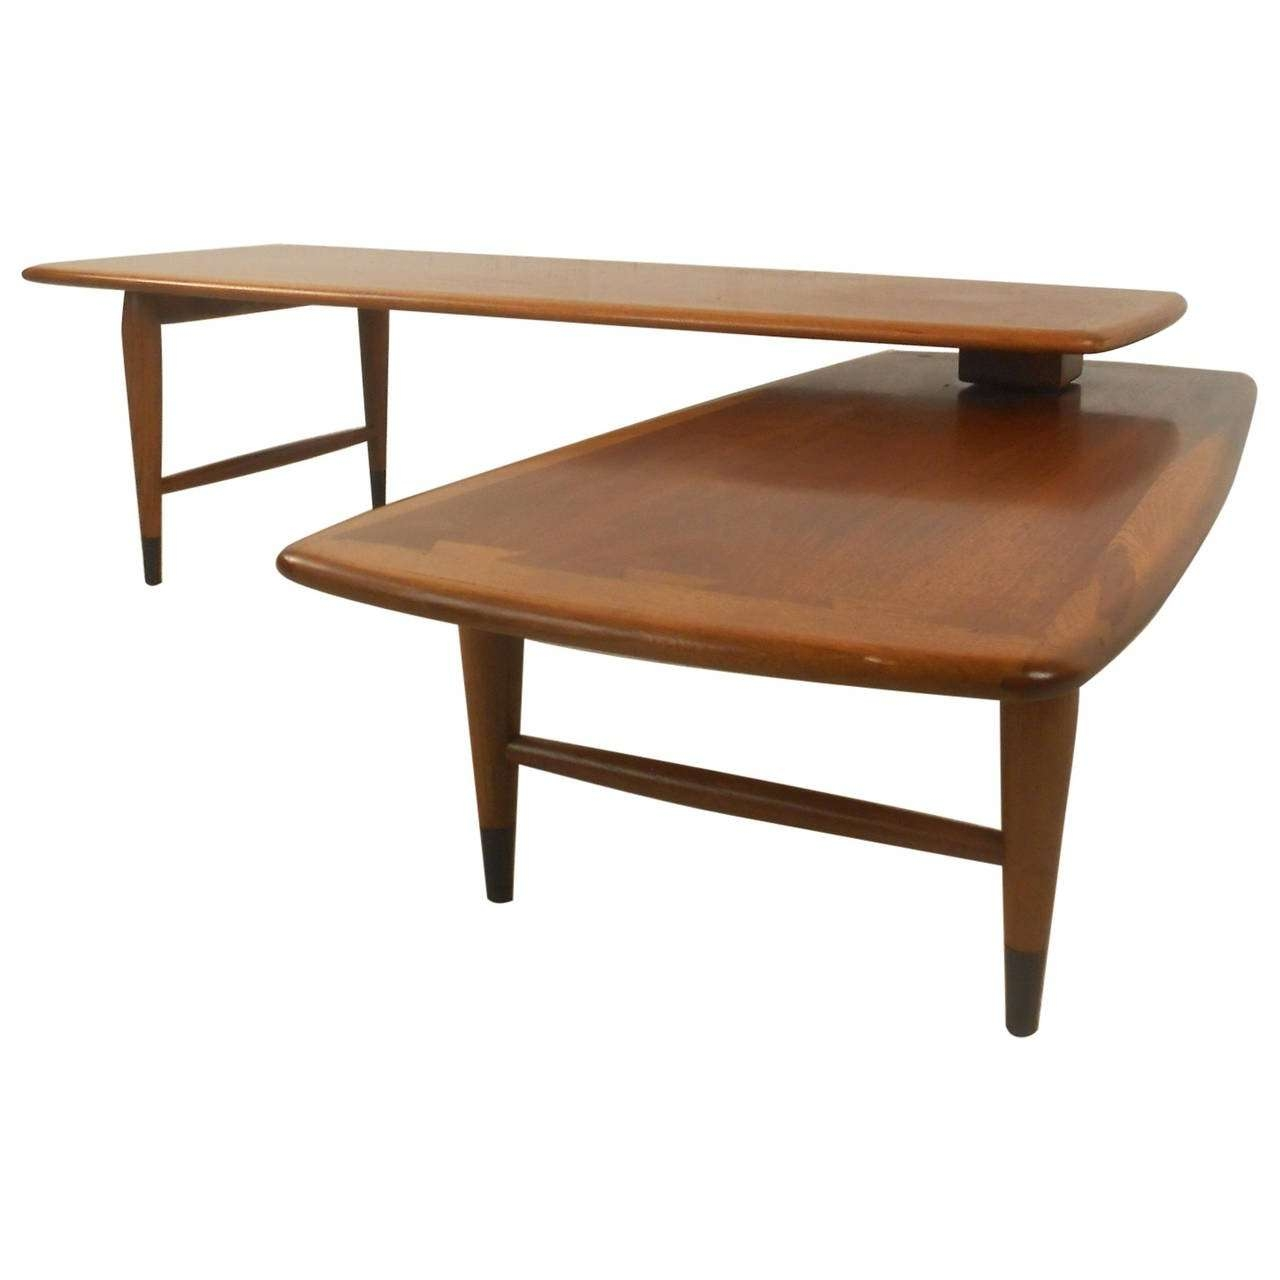 Well Liked L Shaped Coffee Tables Inside Mid Century Modern Switchblade Coffee Tablelane For Sale At (View 19 of 20)